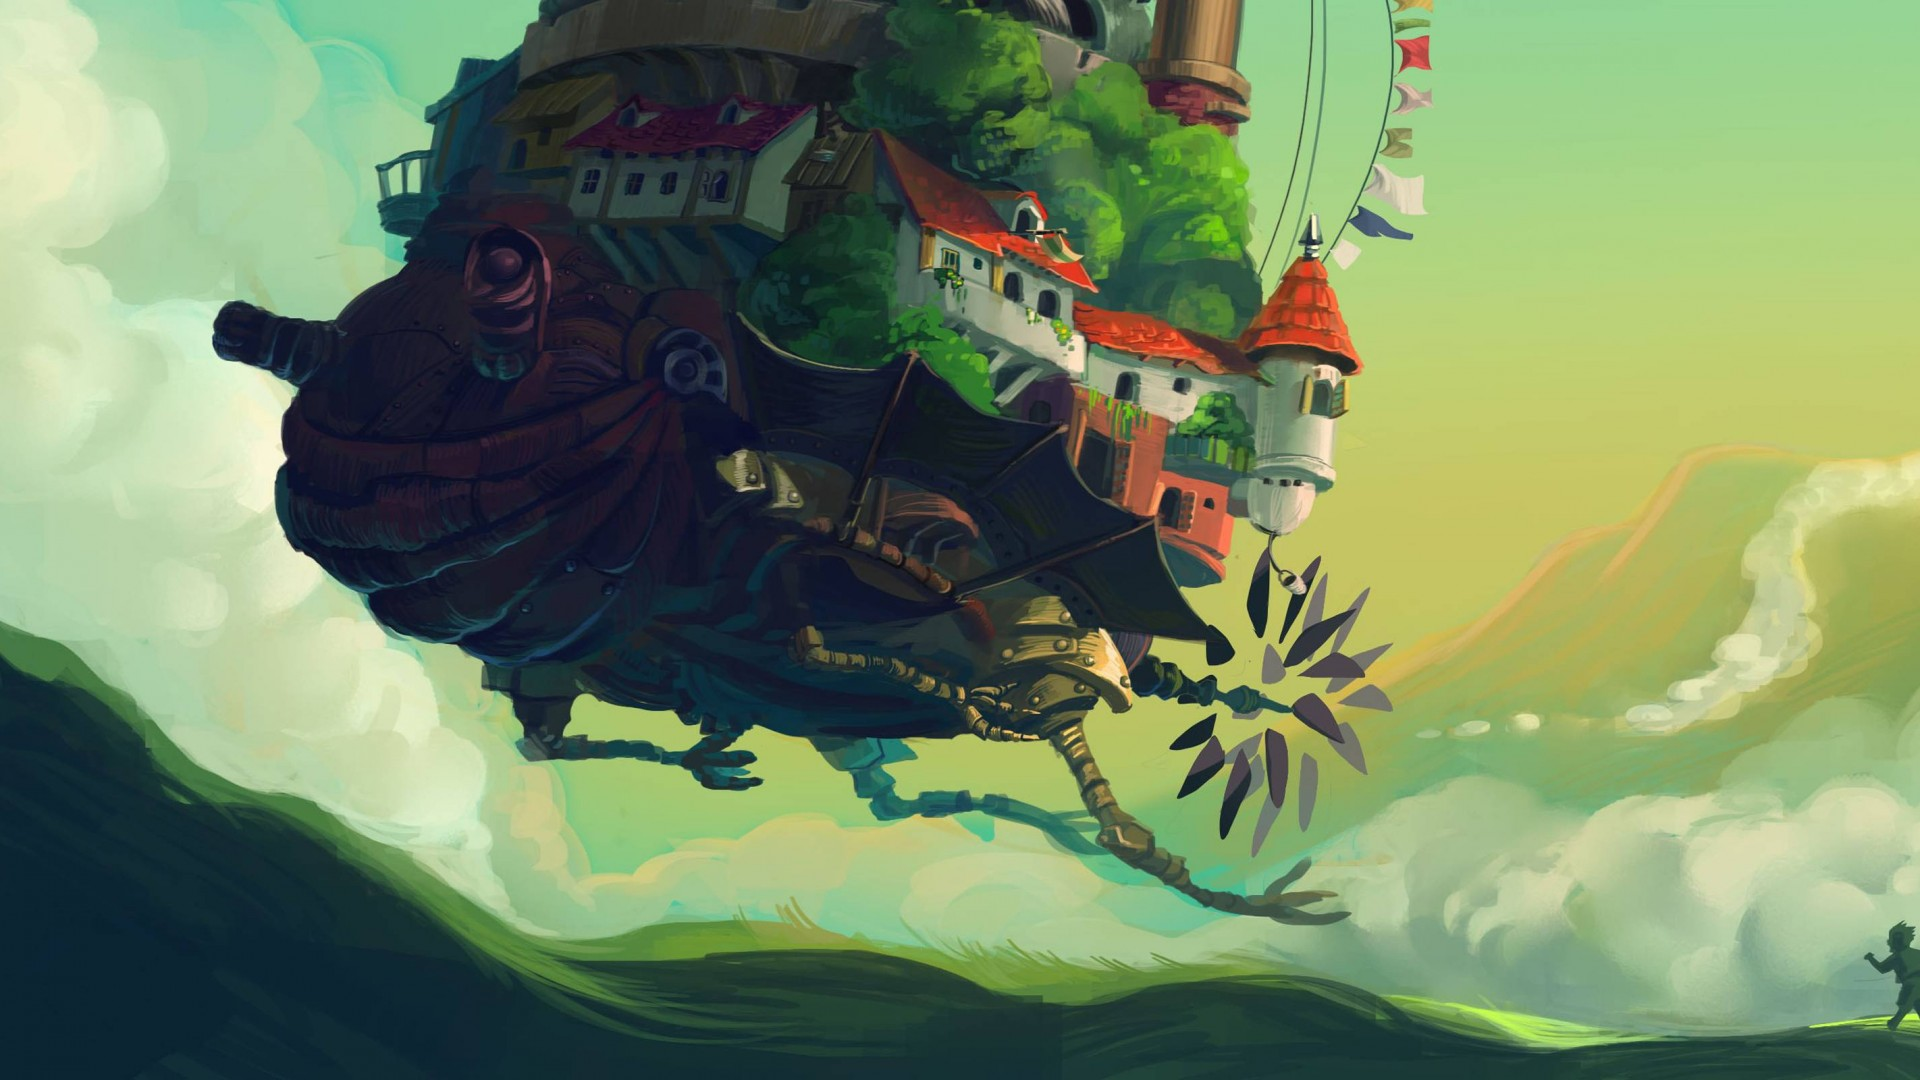 Cute Minimalistic Wallpapers Wallpaper Howl S Moving Castle Turnip Head Meadow Anime